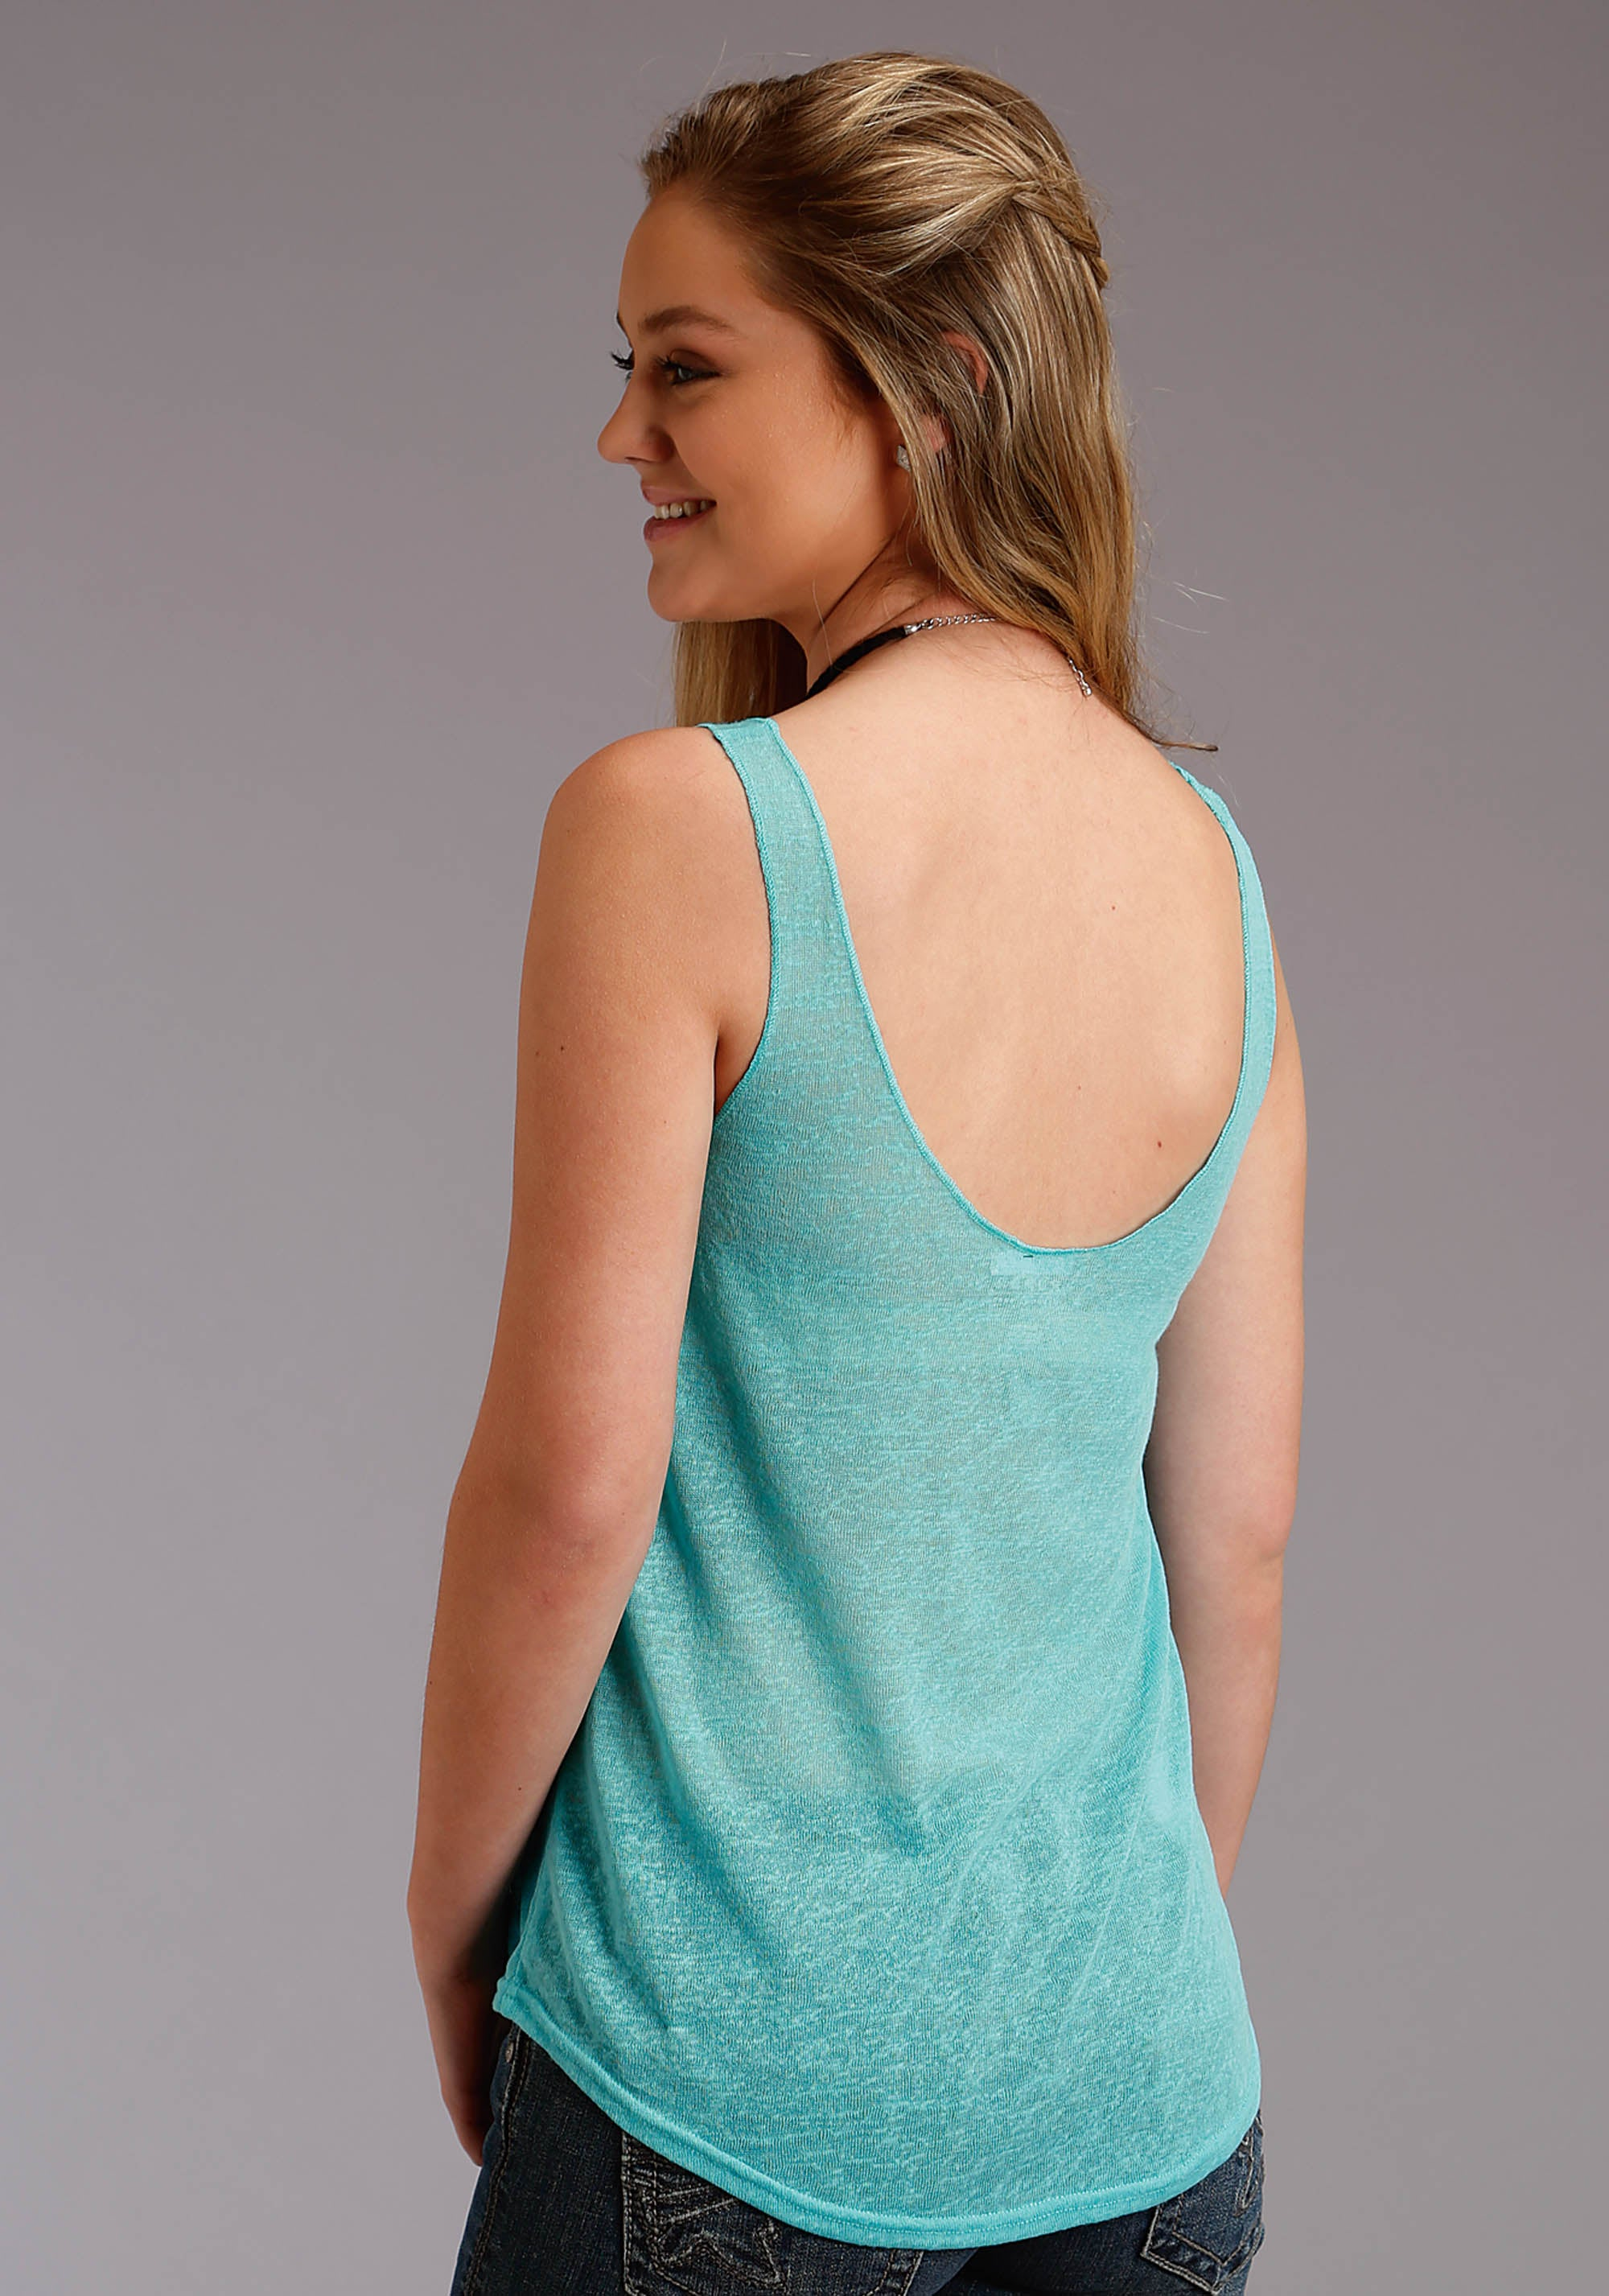 ROPER WOMENS BLUE 3127 SHEER SLUB JERSEY TANK FIVE STAR COLLECTION- SPRING II SLEEVELESS